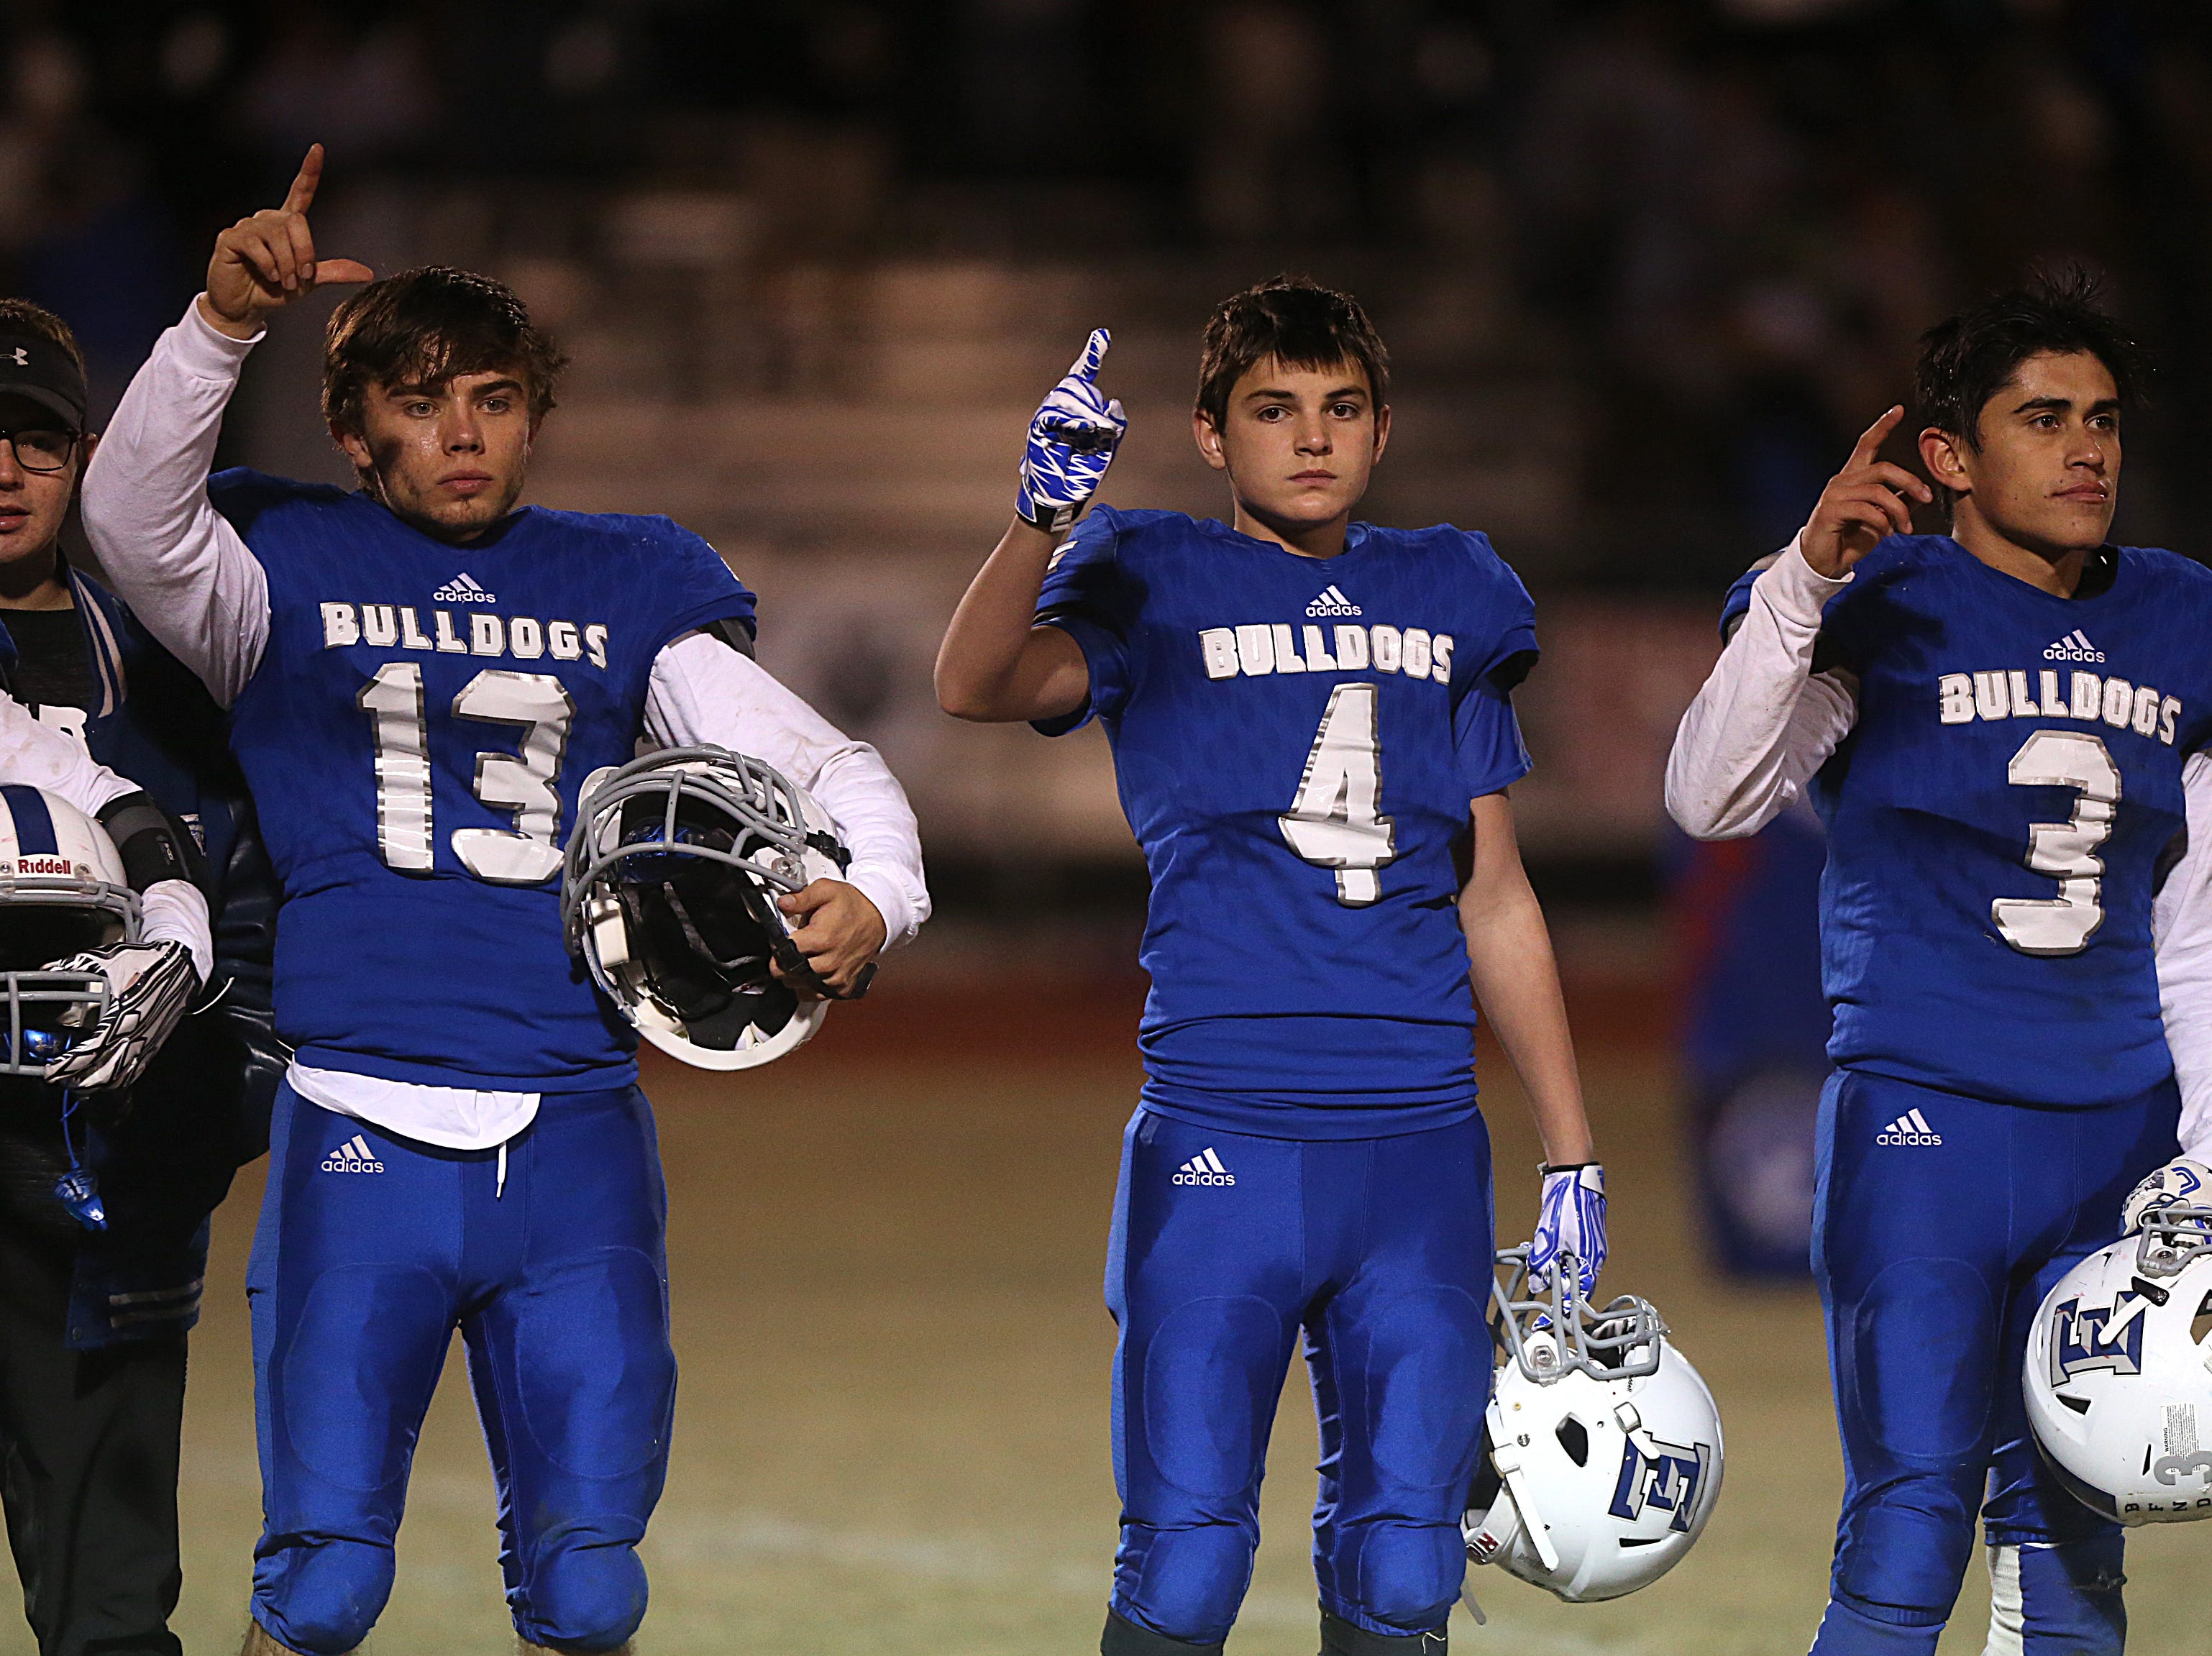 Eden Bulldogs hold their hands up during their school song Friday, Nov. 16, 2018 in Santa Anna. Eden lost to Gorman 20 to 68.